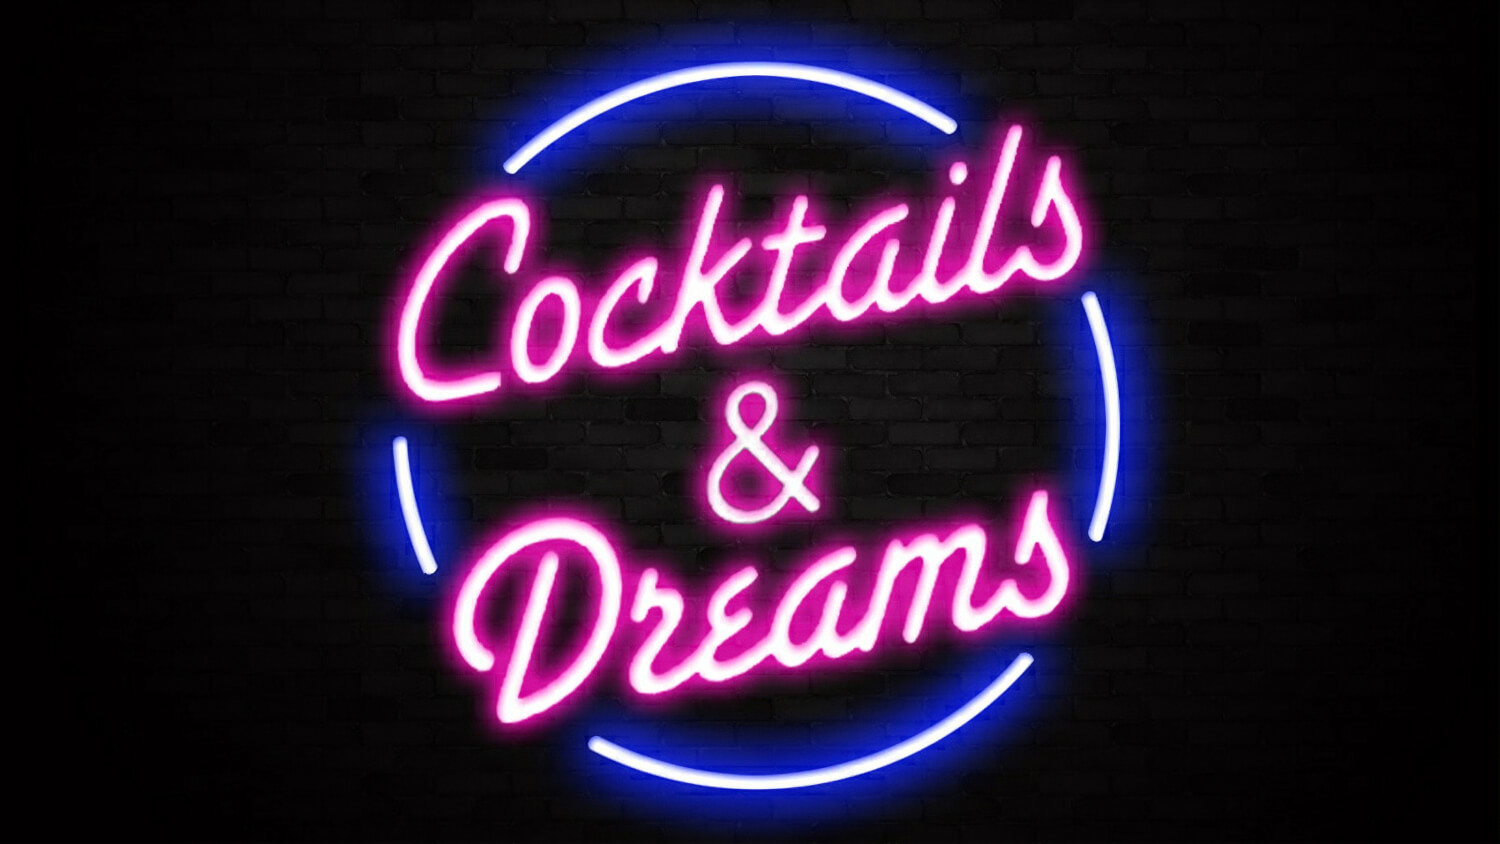 Cocktails dreams sign liberty games cocktails dreams neon bar sign aloadofball Images